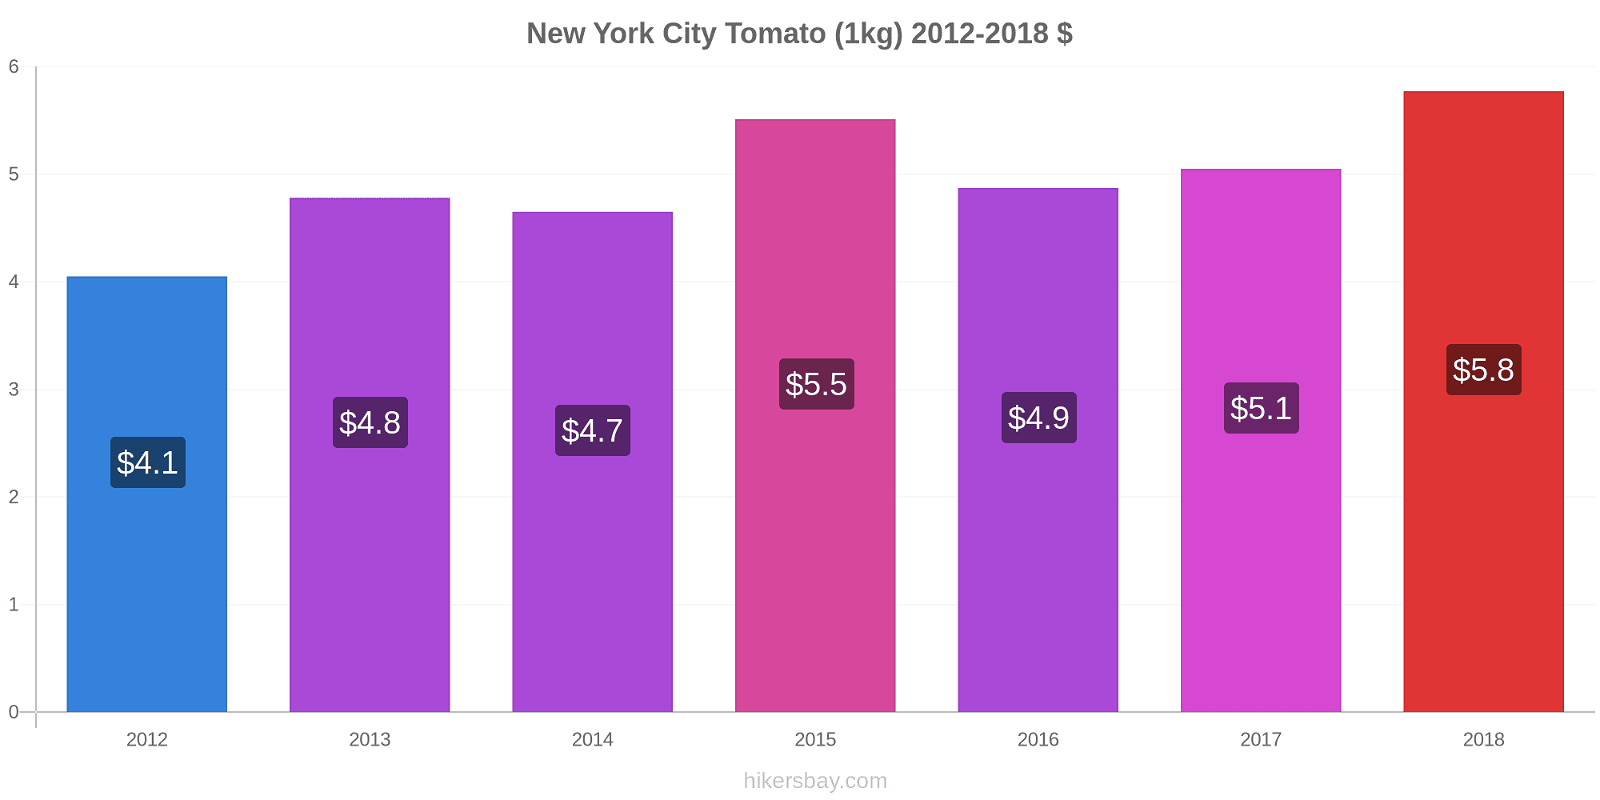 New York City price changes Tomato (1kg) hikersbay.com